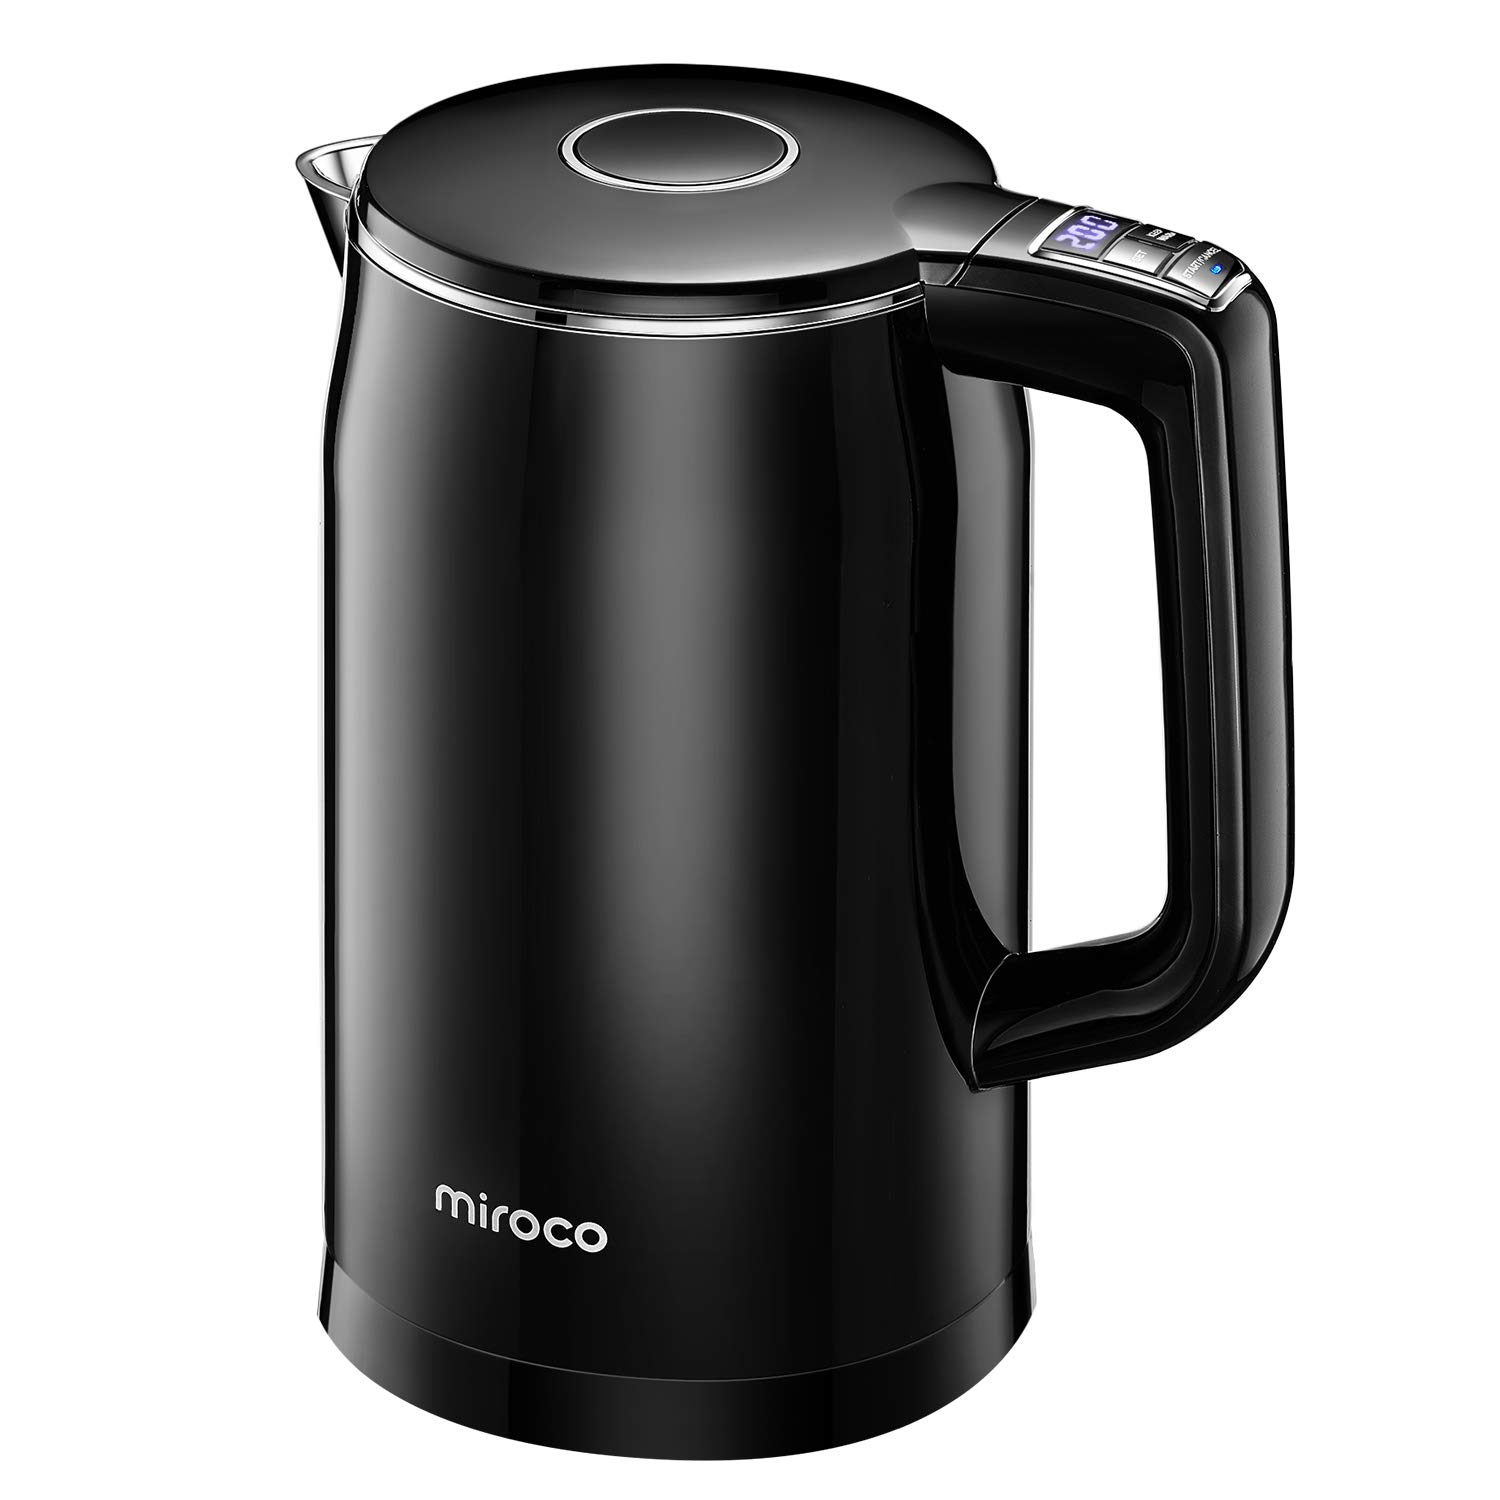 Miroco Electric Kettle Temperature Control 1.7L Double Wall Keep Warm, Anti-scald Tea Kettle 100% Stainless Steel BPA-Free Hot Water Boiler, Auto Shut-Off, Boil-Dry Protection, 1500W Fast Boiling-120V by Miroco